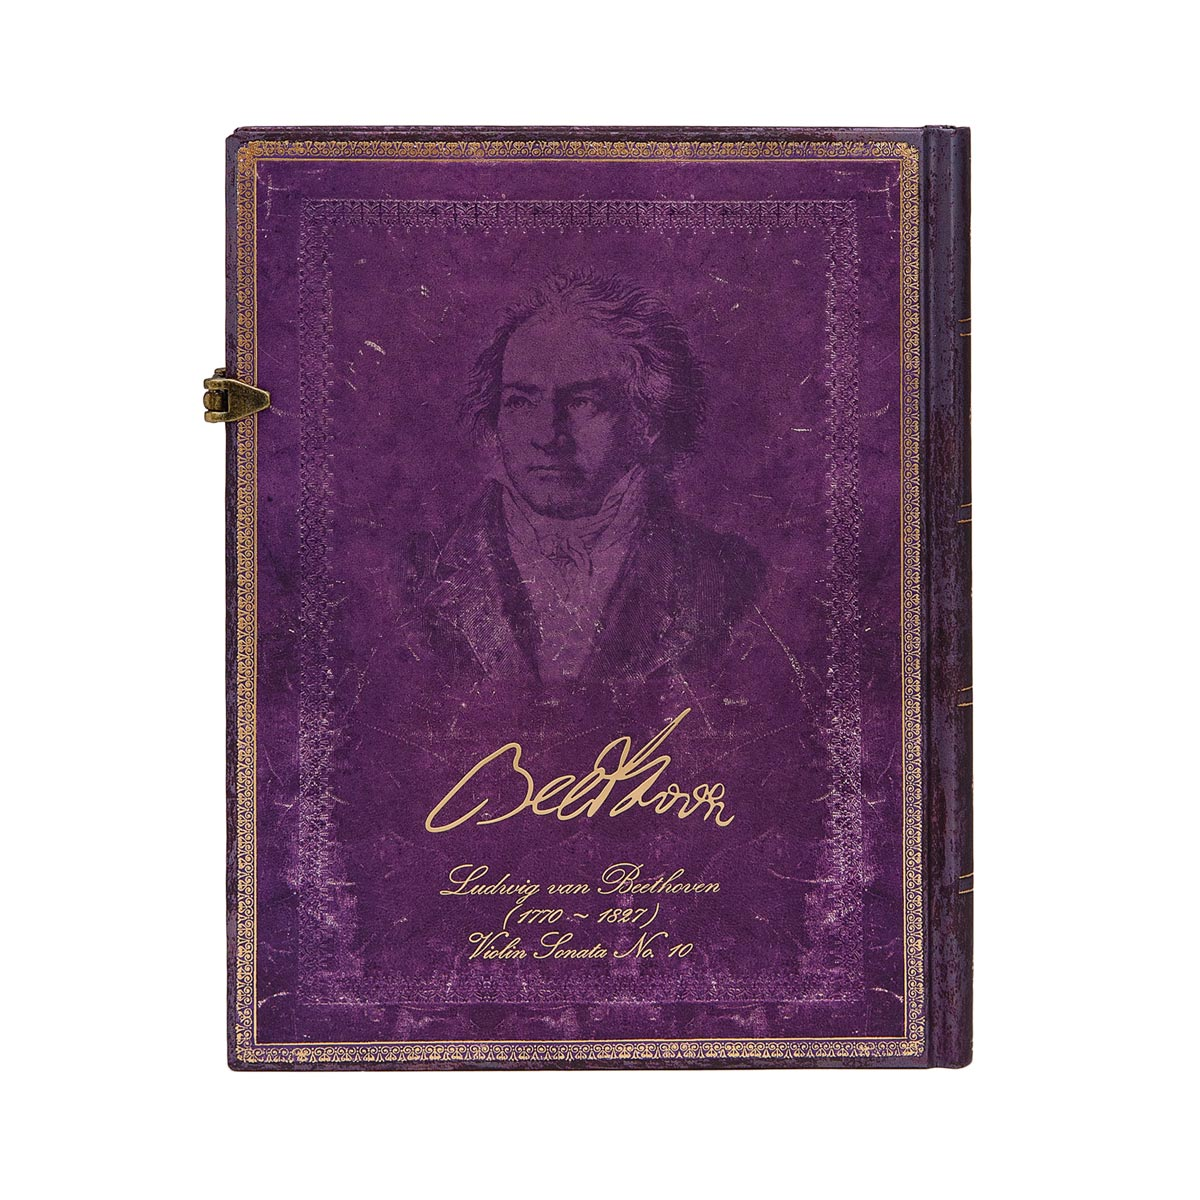 Paperblanks Beethoven's 250th Birthday Ultra 7 x 9 Inch